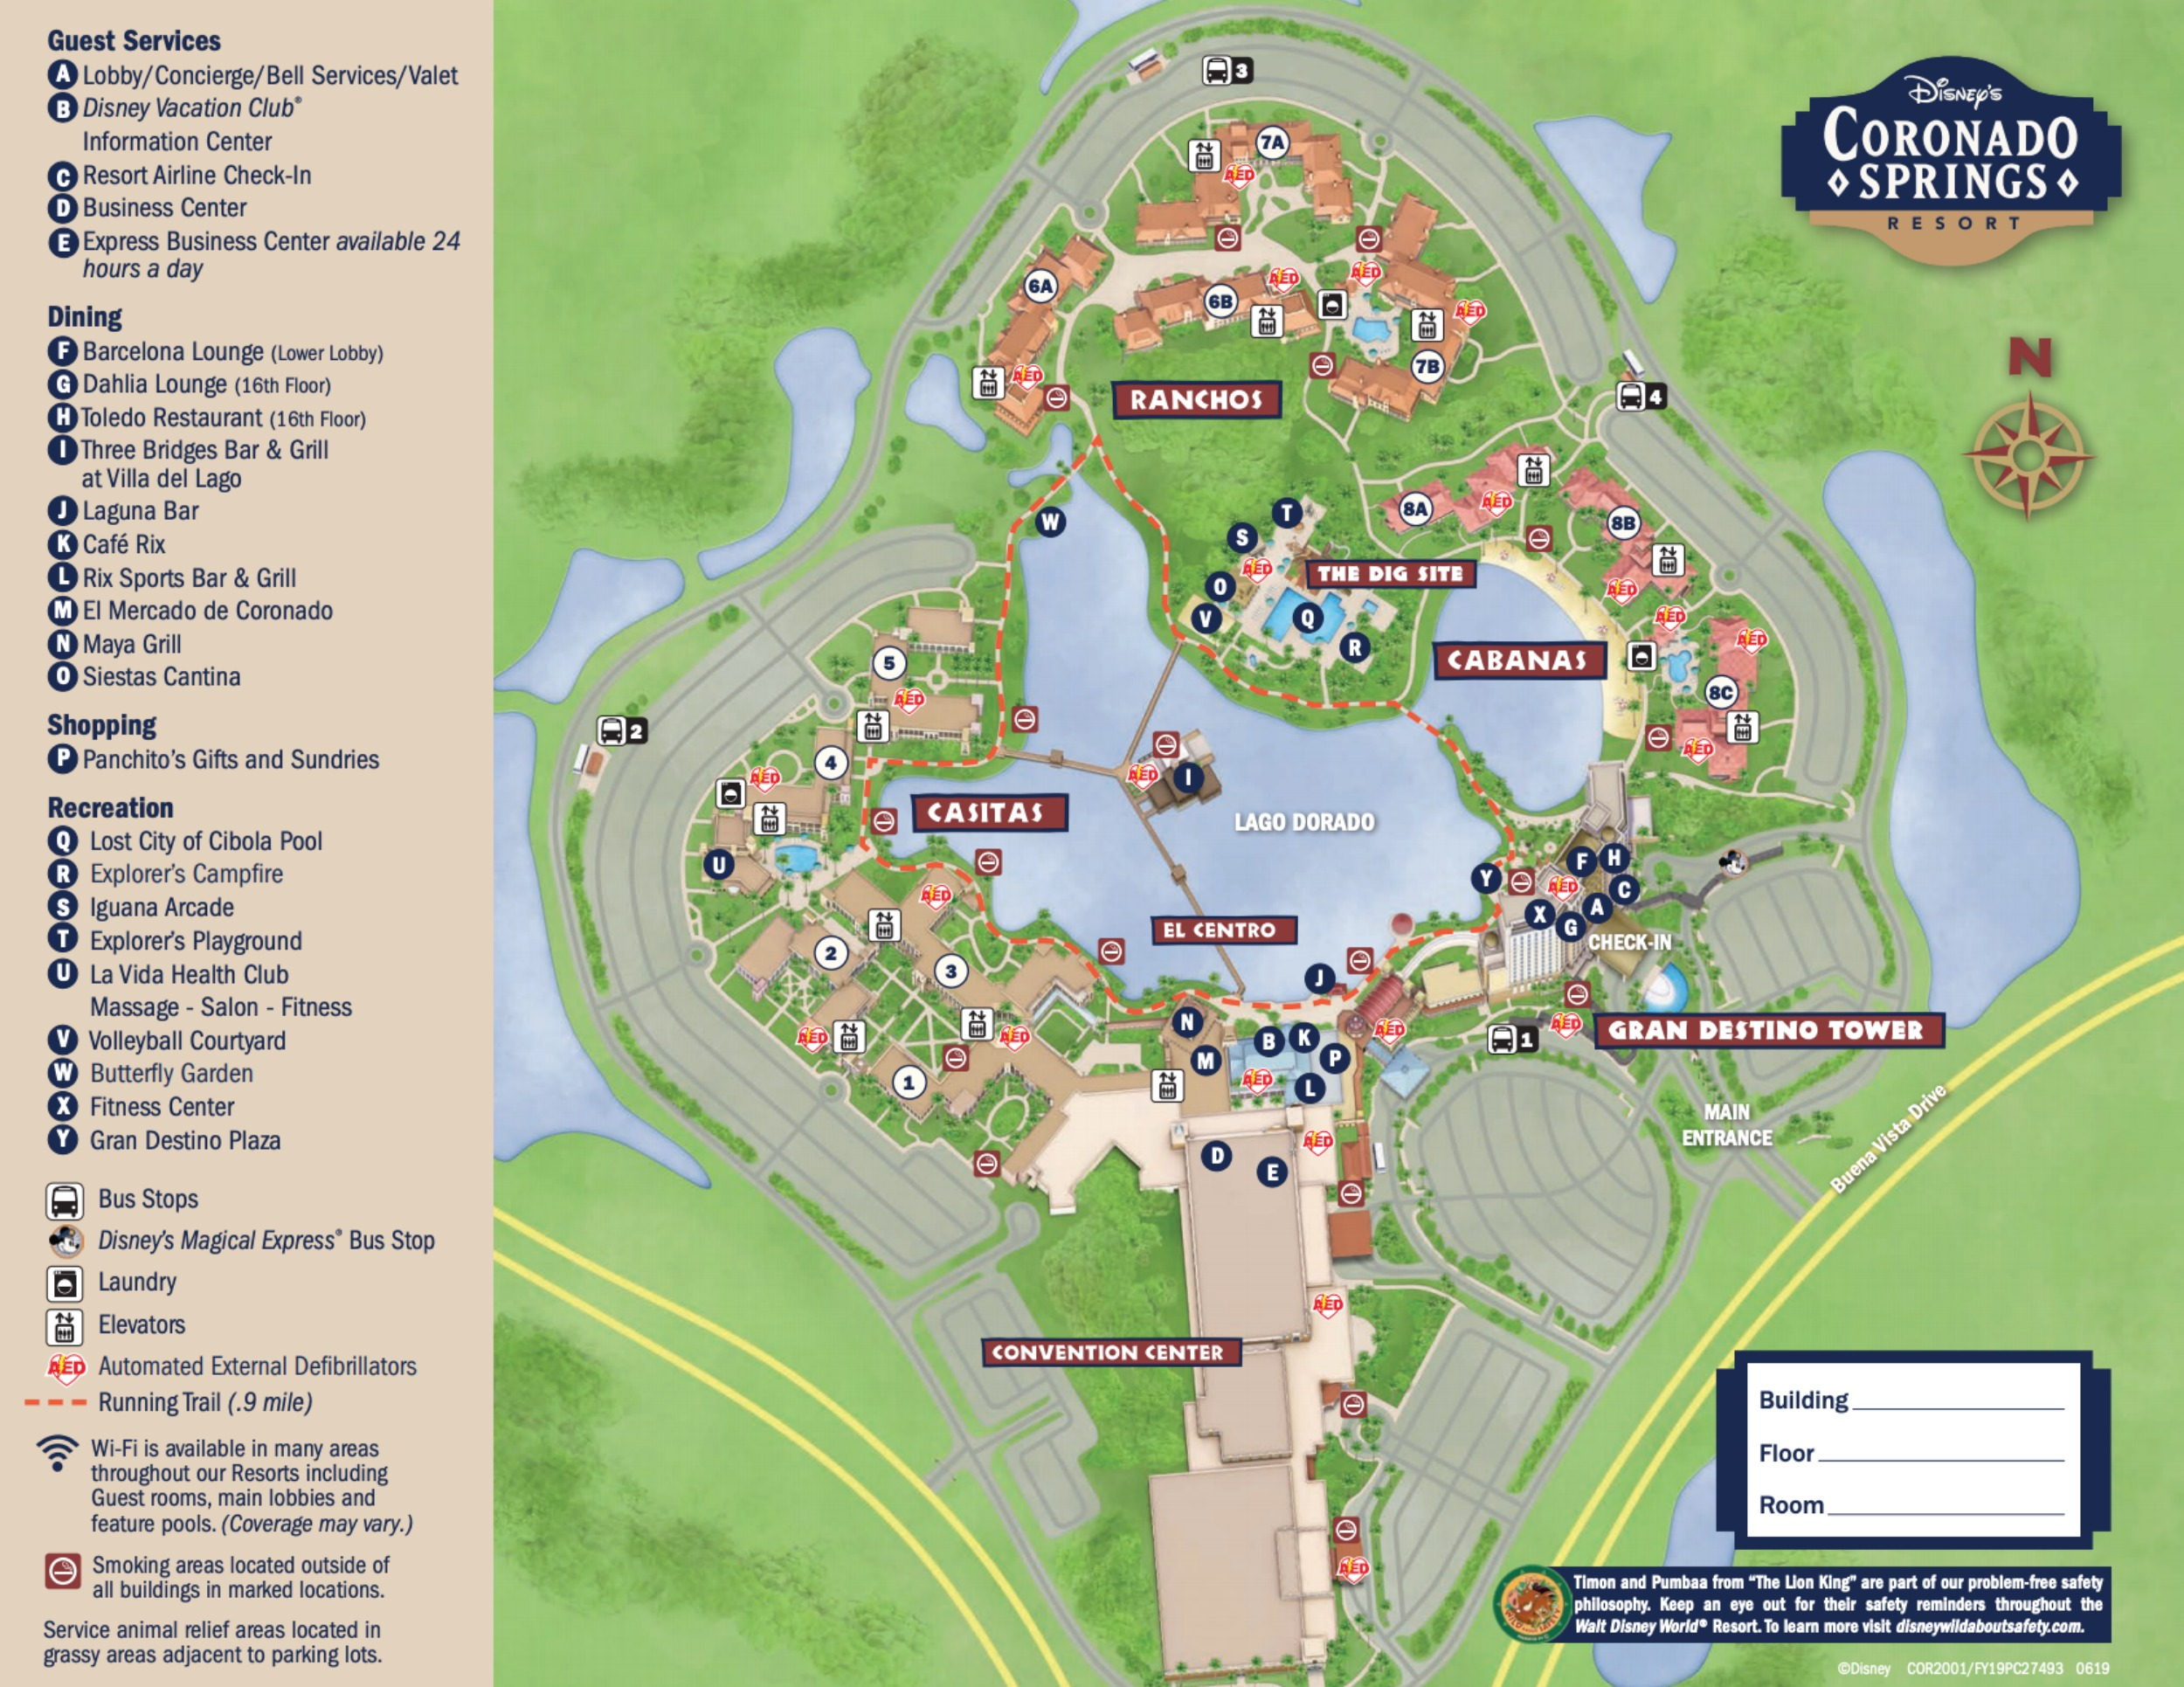 Coronado Springs Map Disney's Coronado Springs Resort Map   wdwinfo.com